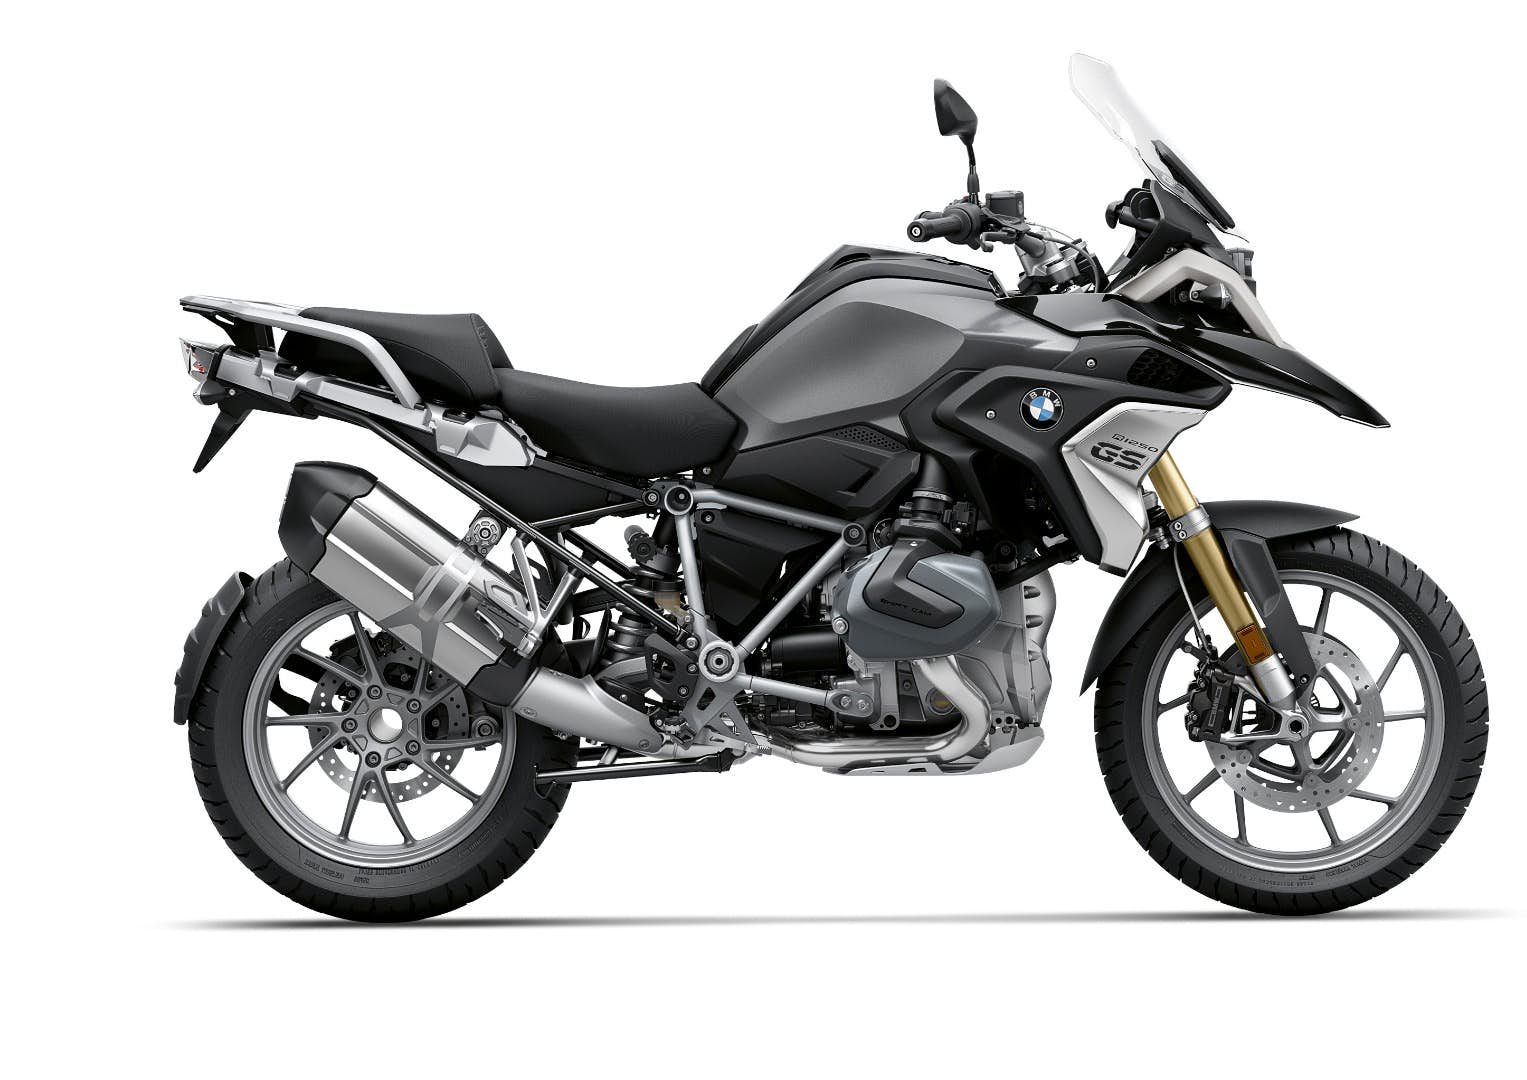 Bmw Motorrad Officially Unveils New 2019 R 1250 Gs And R 1250 Rt